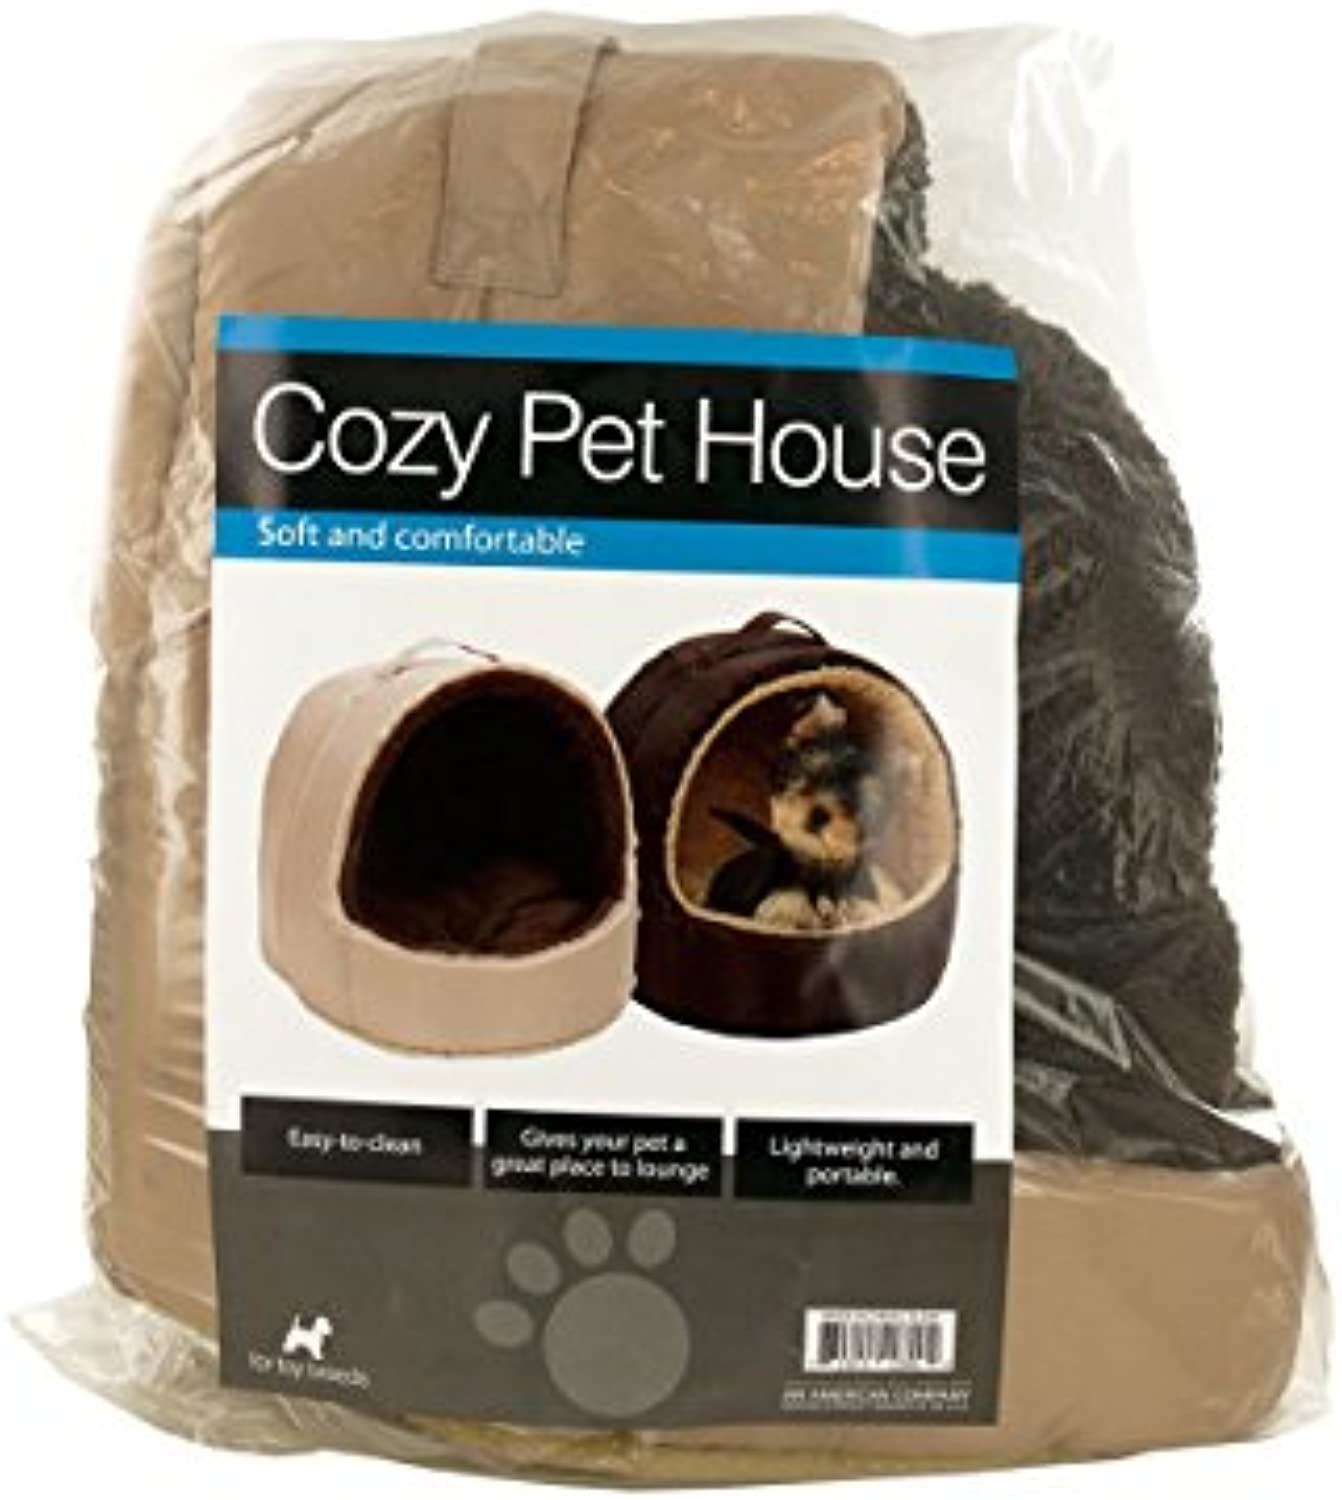 Cozy Portable Pet House with Carry Handle  Pack of 2